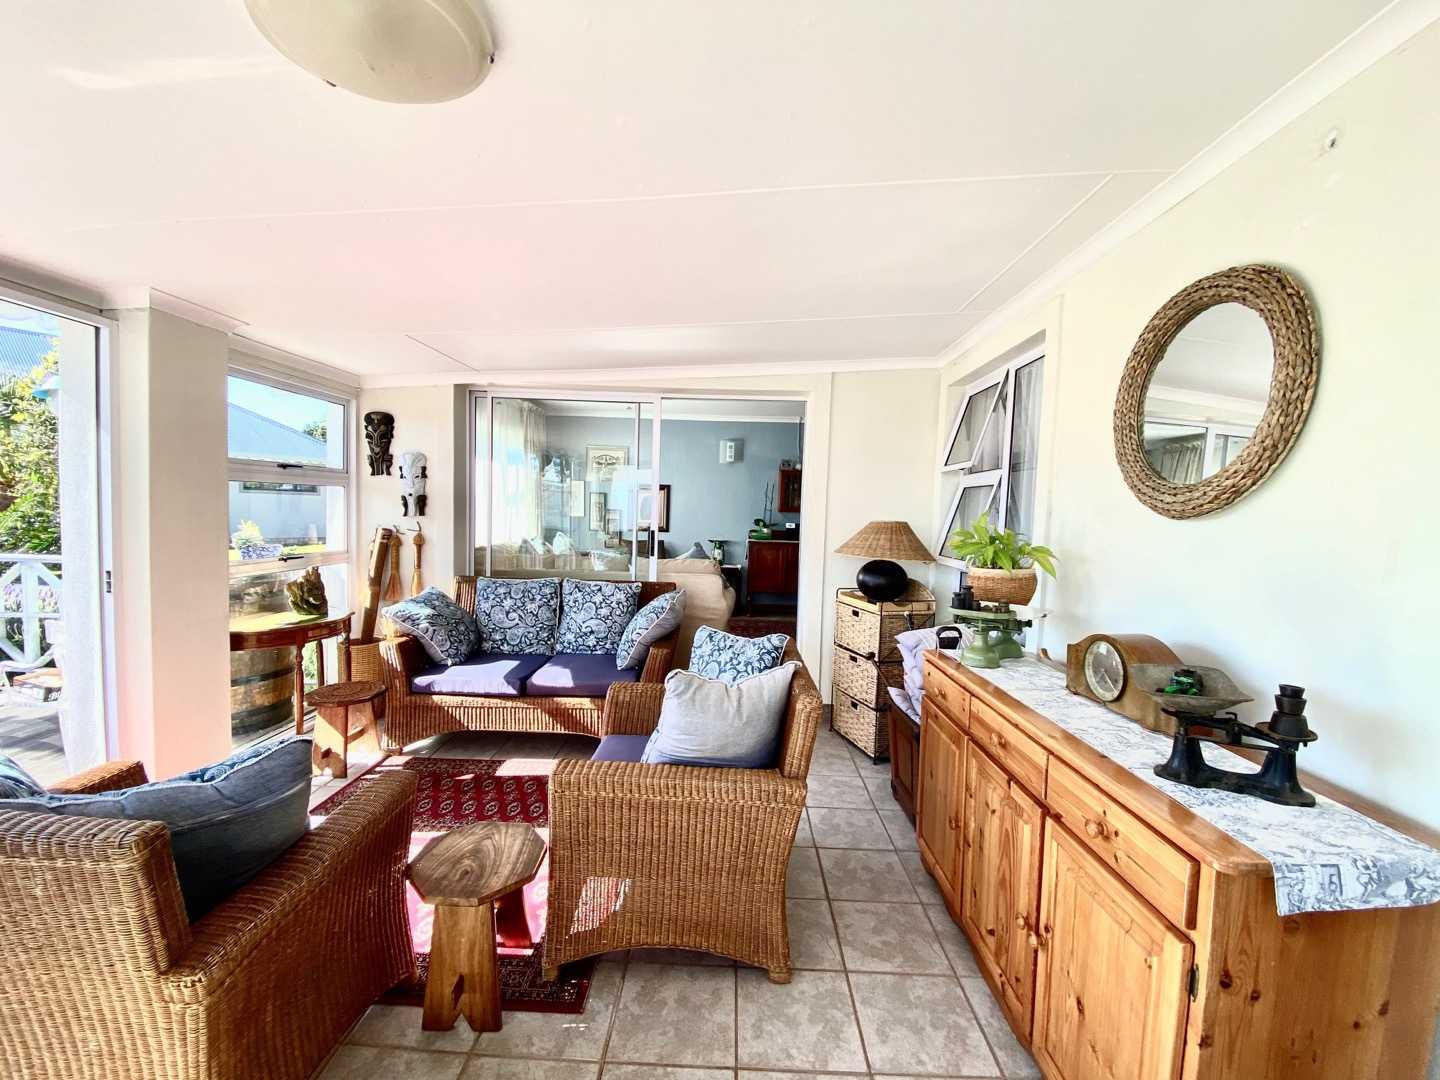 3 Bedroom House For Sale in Marina Martinique